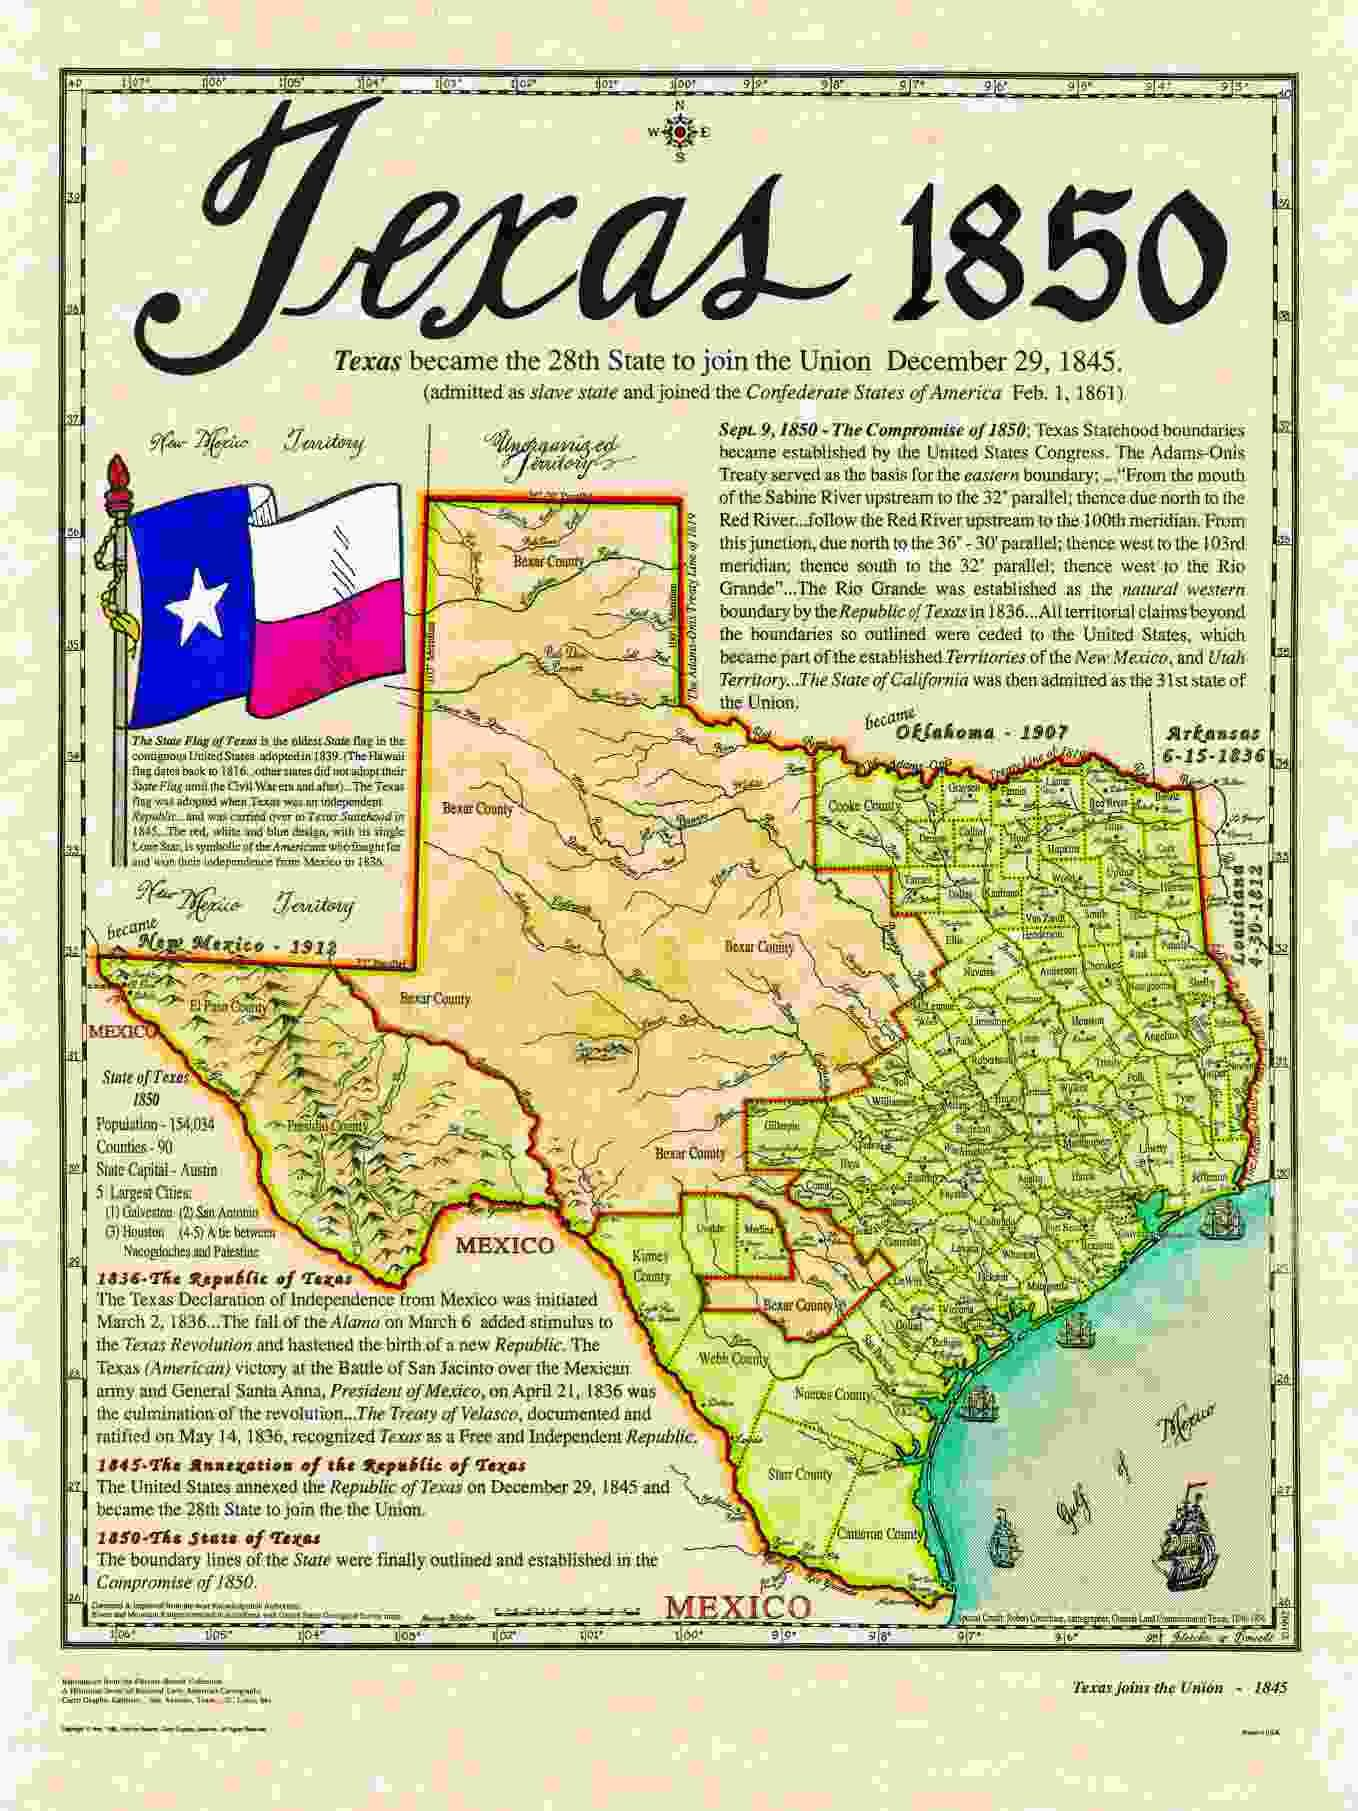 Historical Texas Maps, Texana Series in 2019   Historical ... on texas map of monterey, texas indian map, texas map of arizona, texas map of dallas, texas county map, texas map of cordova, texas map of fremont, texas world map, texas map of paris, texas europe map, texas space, texas us map,